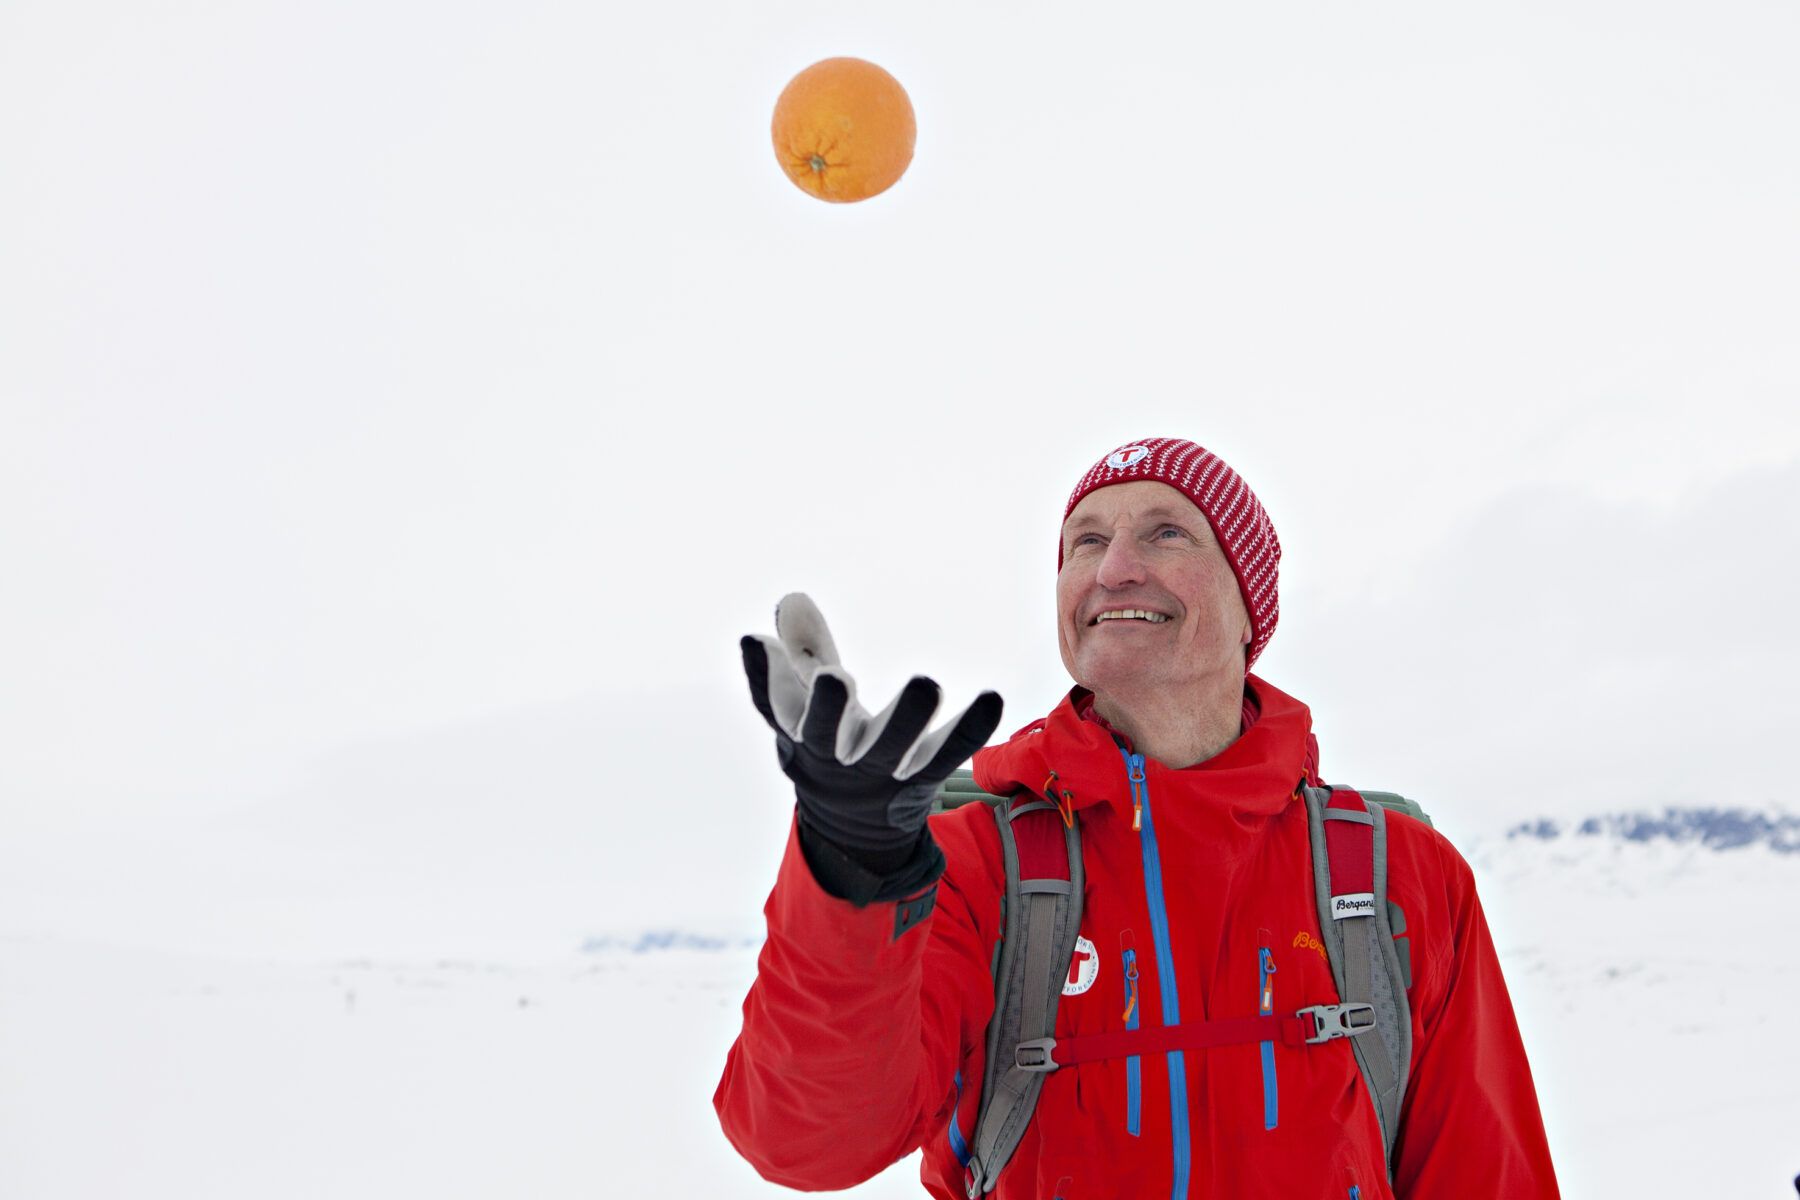 The skiing will not be the same if you forget to bring an orange. Ask any Norwegian, they'll tell you it's true. Photo: Elin Hansson